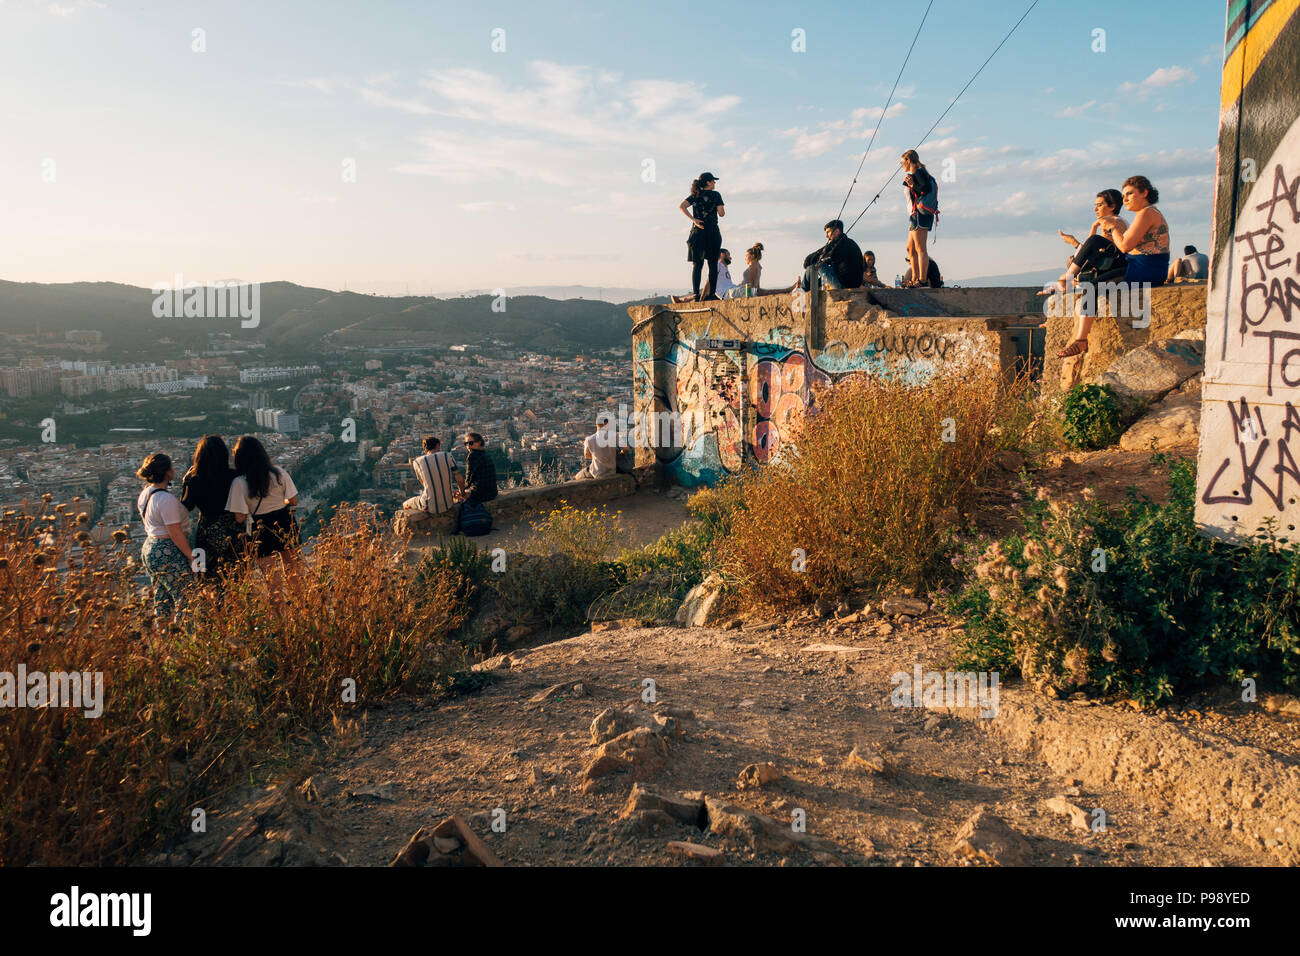 a young group of tourists sit atop Bunquers del Carmel at sunset, a famous lookout over the city of Barcelona, Spain Stock Photo